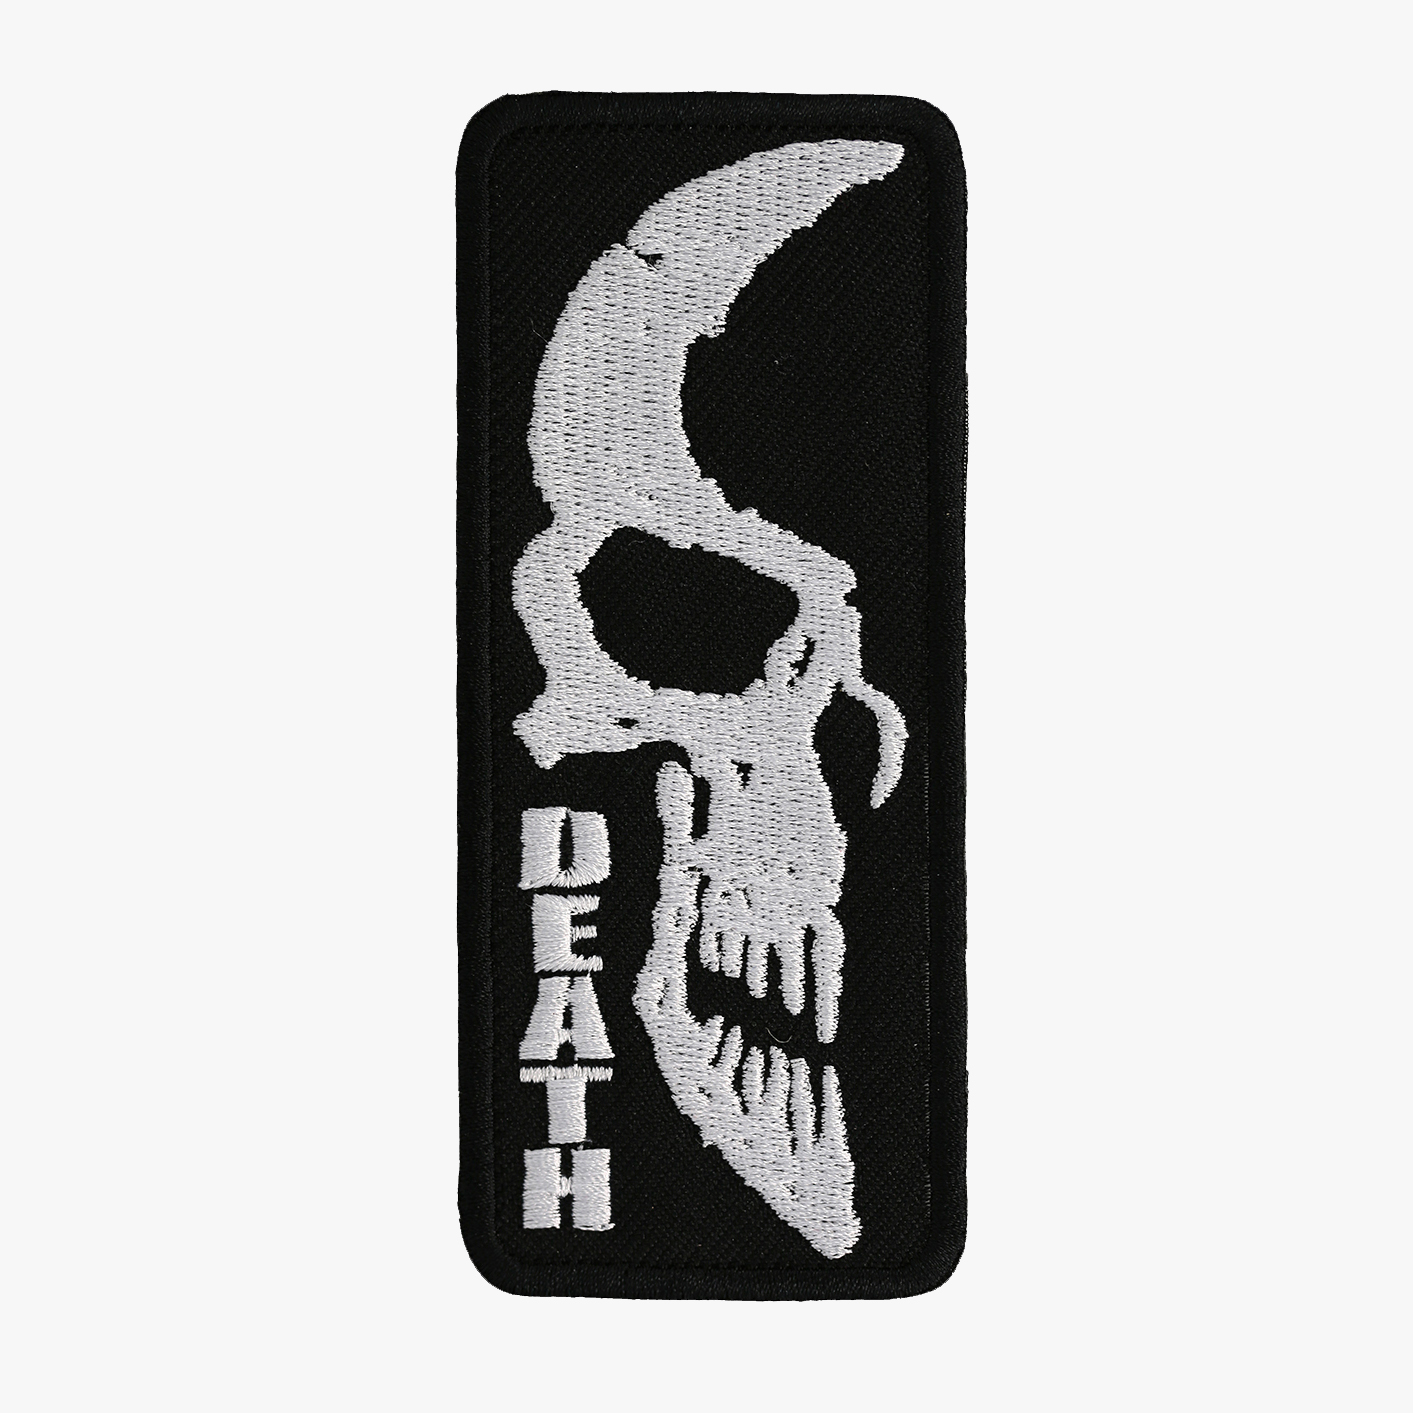 DEAD SKULL BIKER EMBROIDERY PATCH